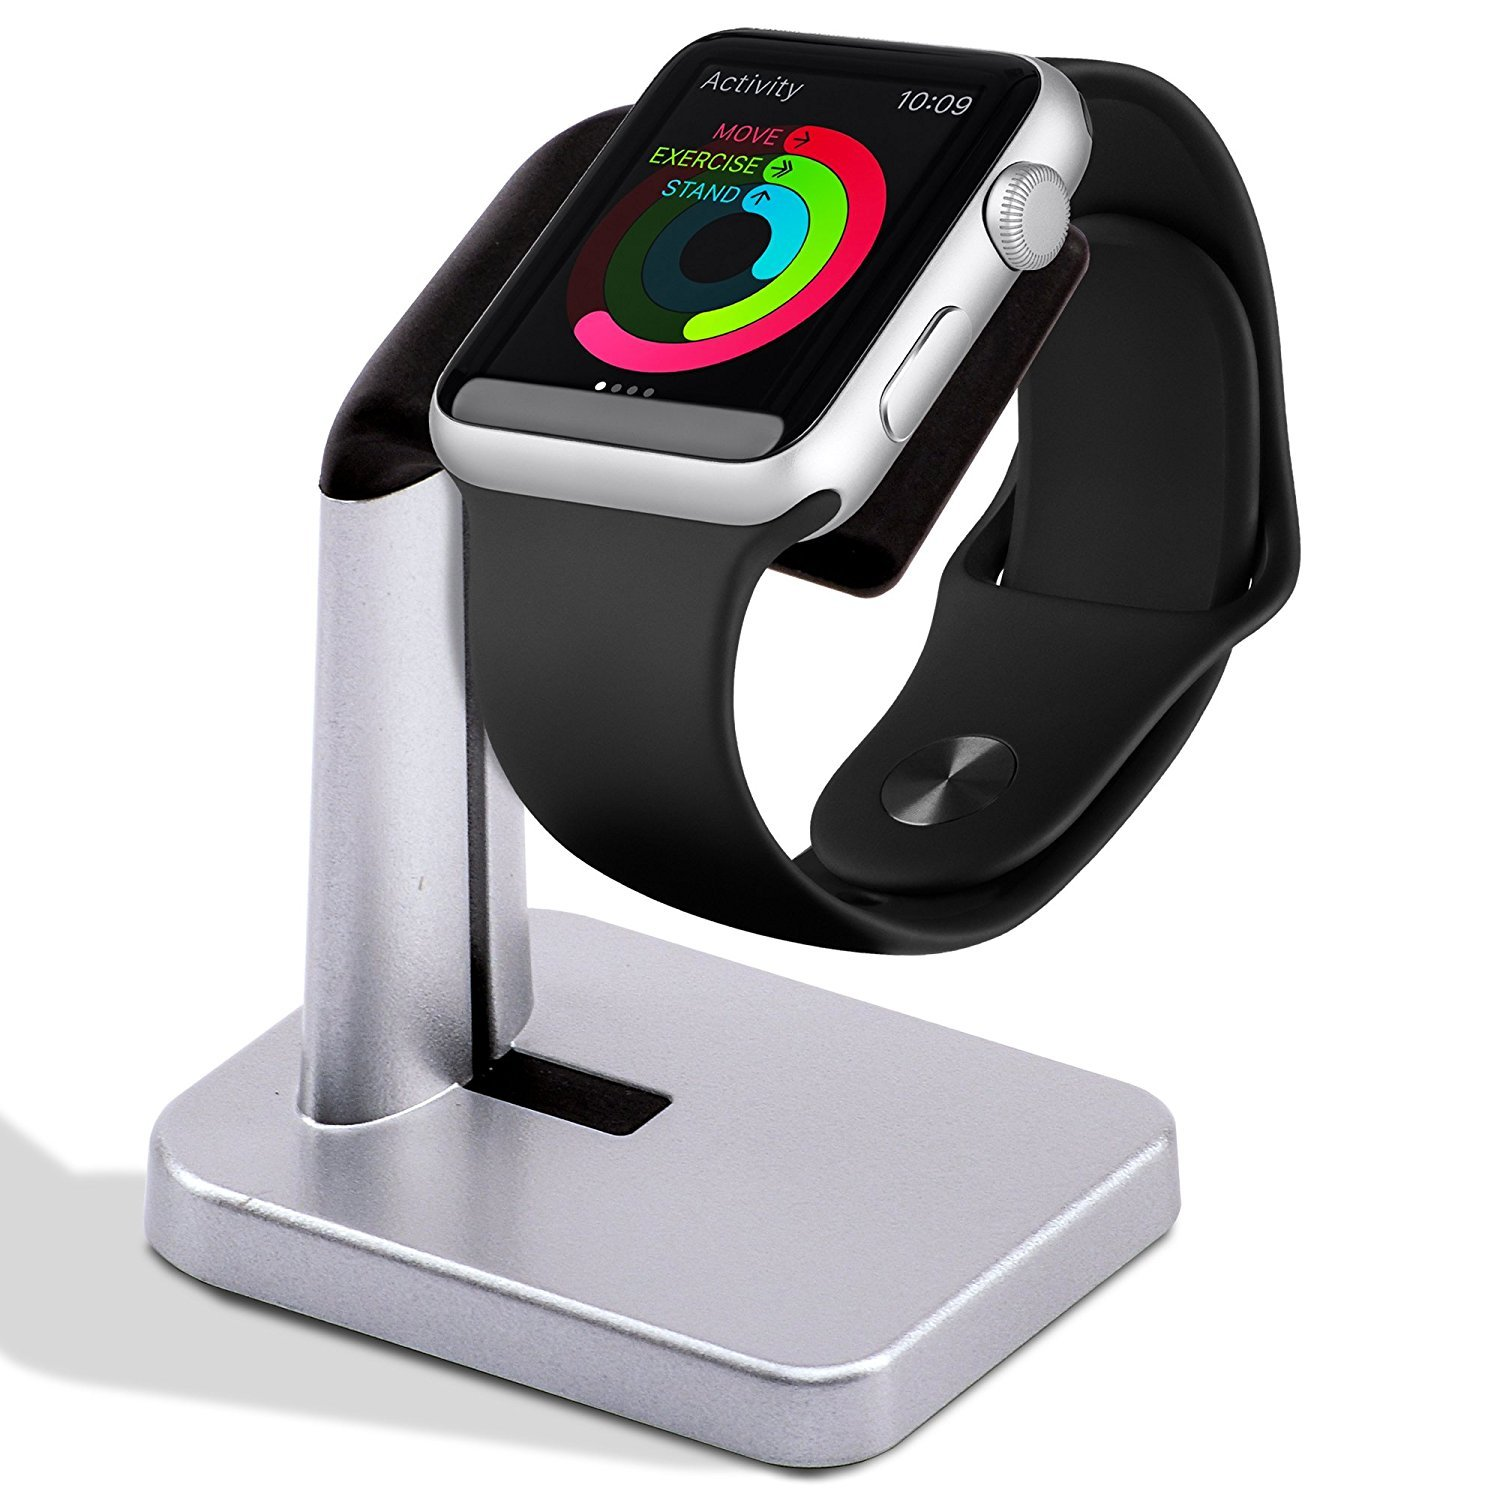 A'O Watch Charger Station Compatible with Apple Watch Charging Dock,iWatch holder stand for smart watches series 38/42mm. Silver black color station, cable not included. Antislip Platform.